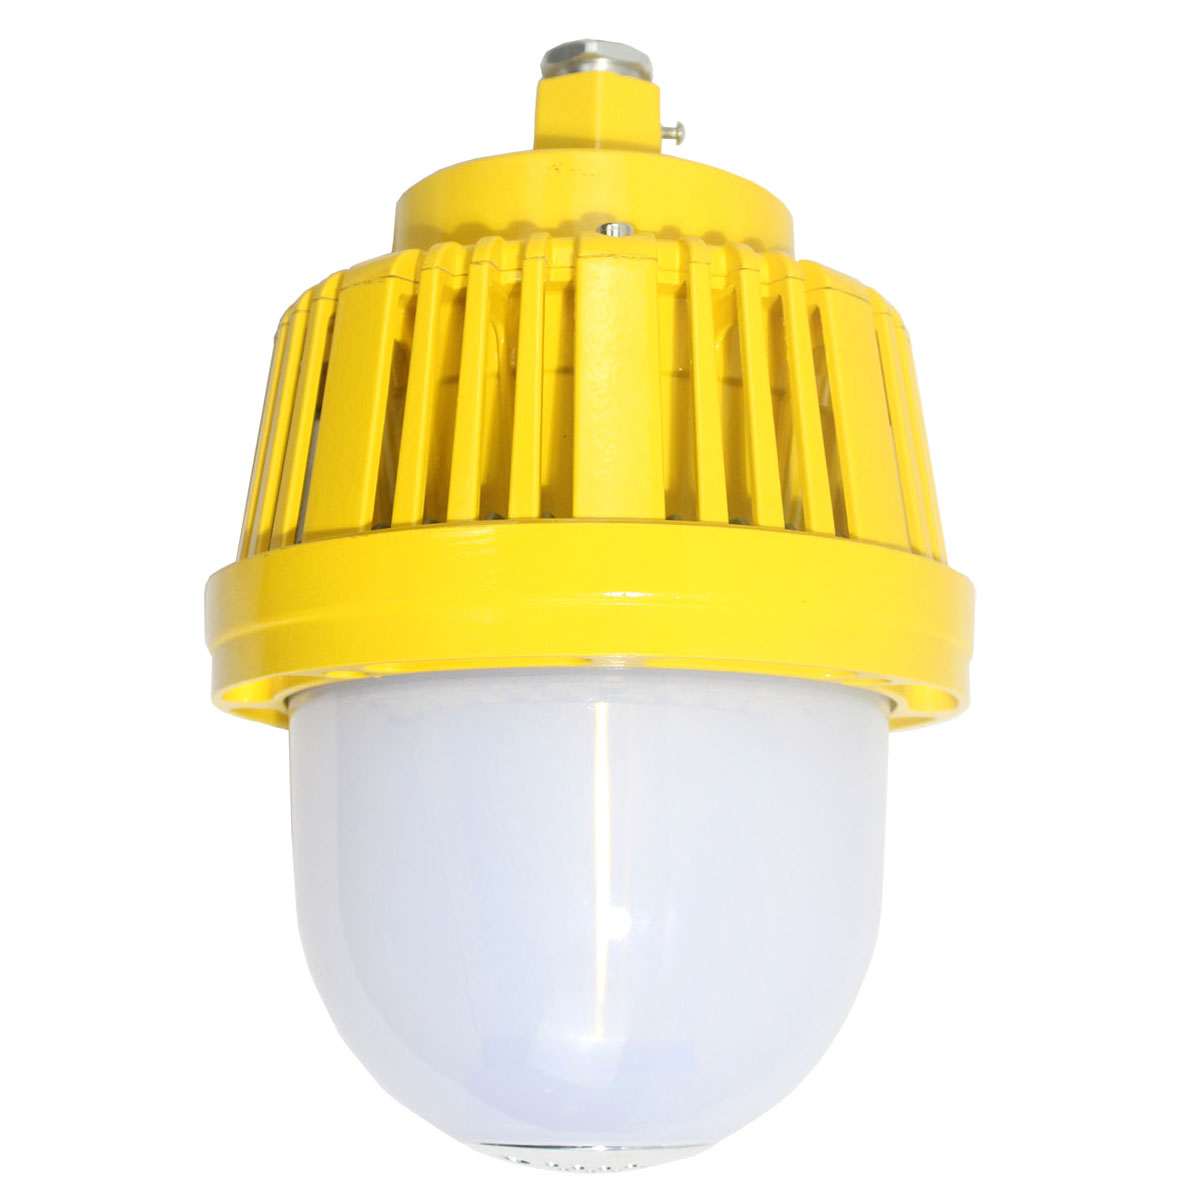 MAXL-5040P 40W Explosion Proof Pendant Platform Light